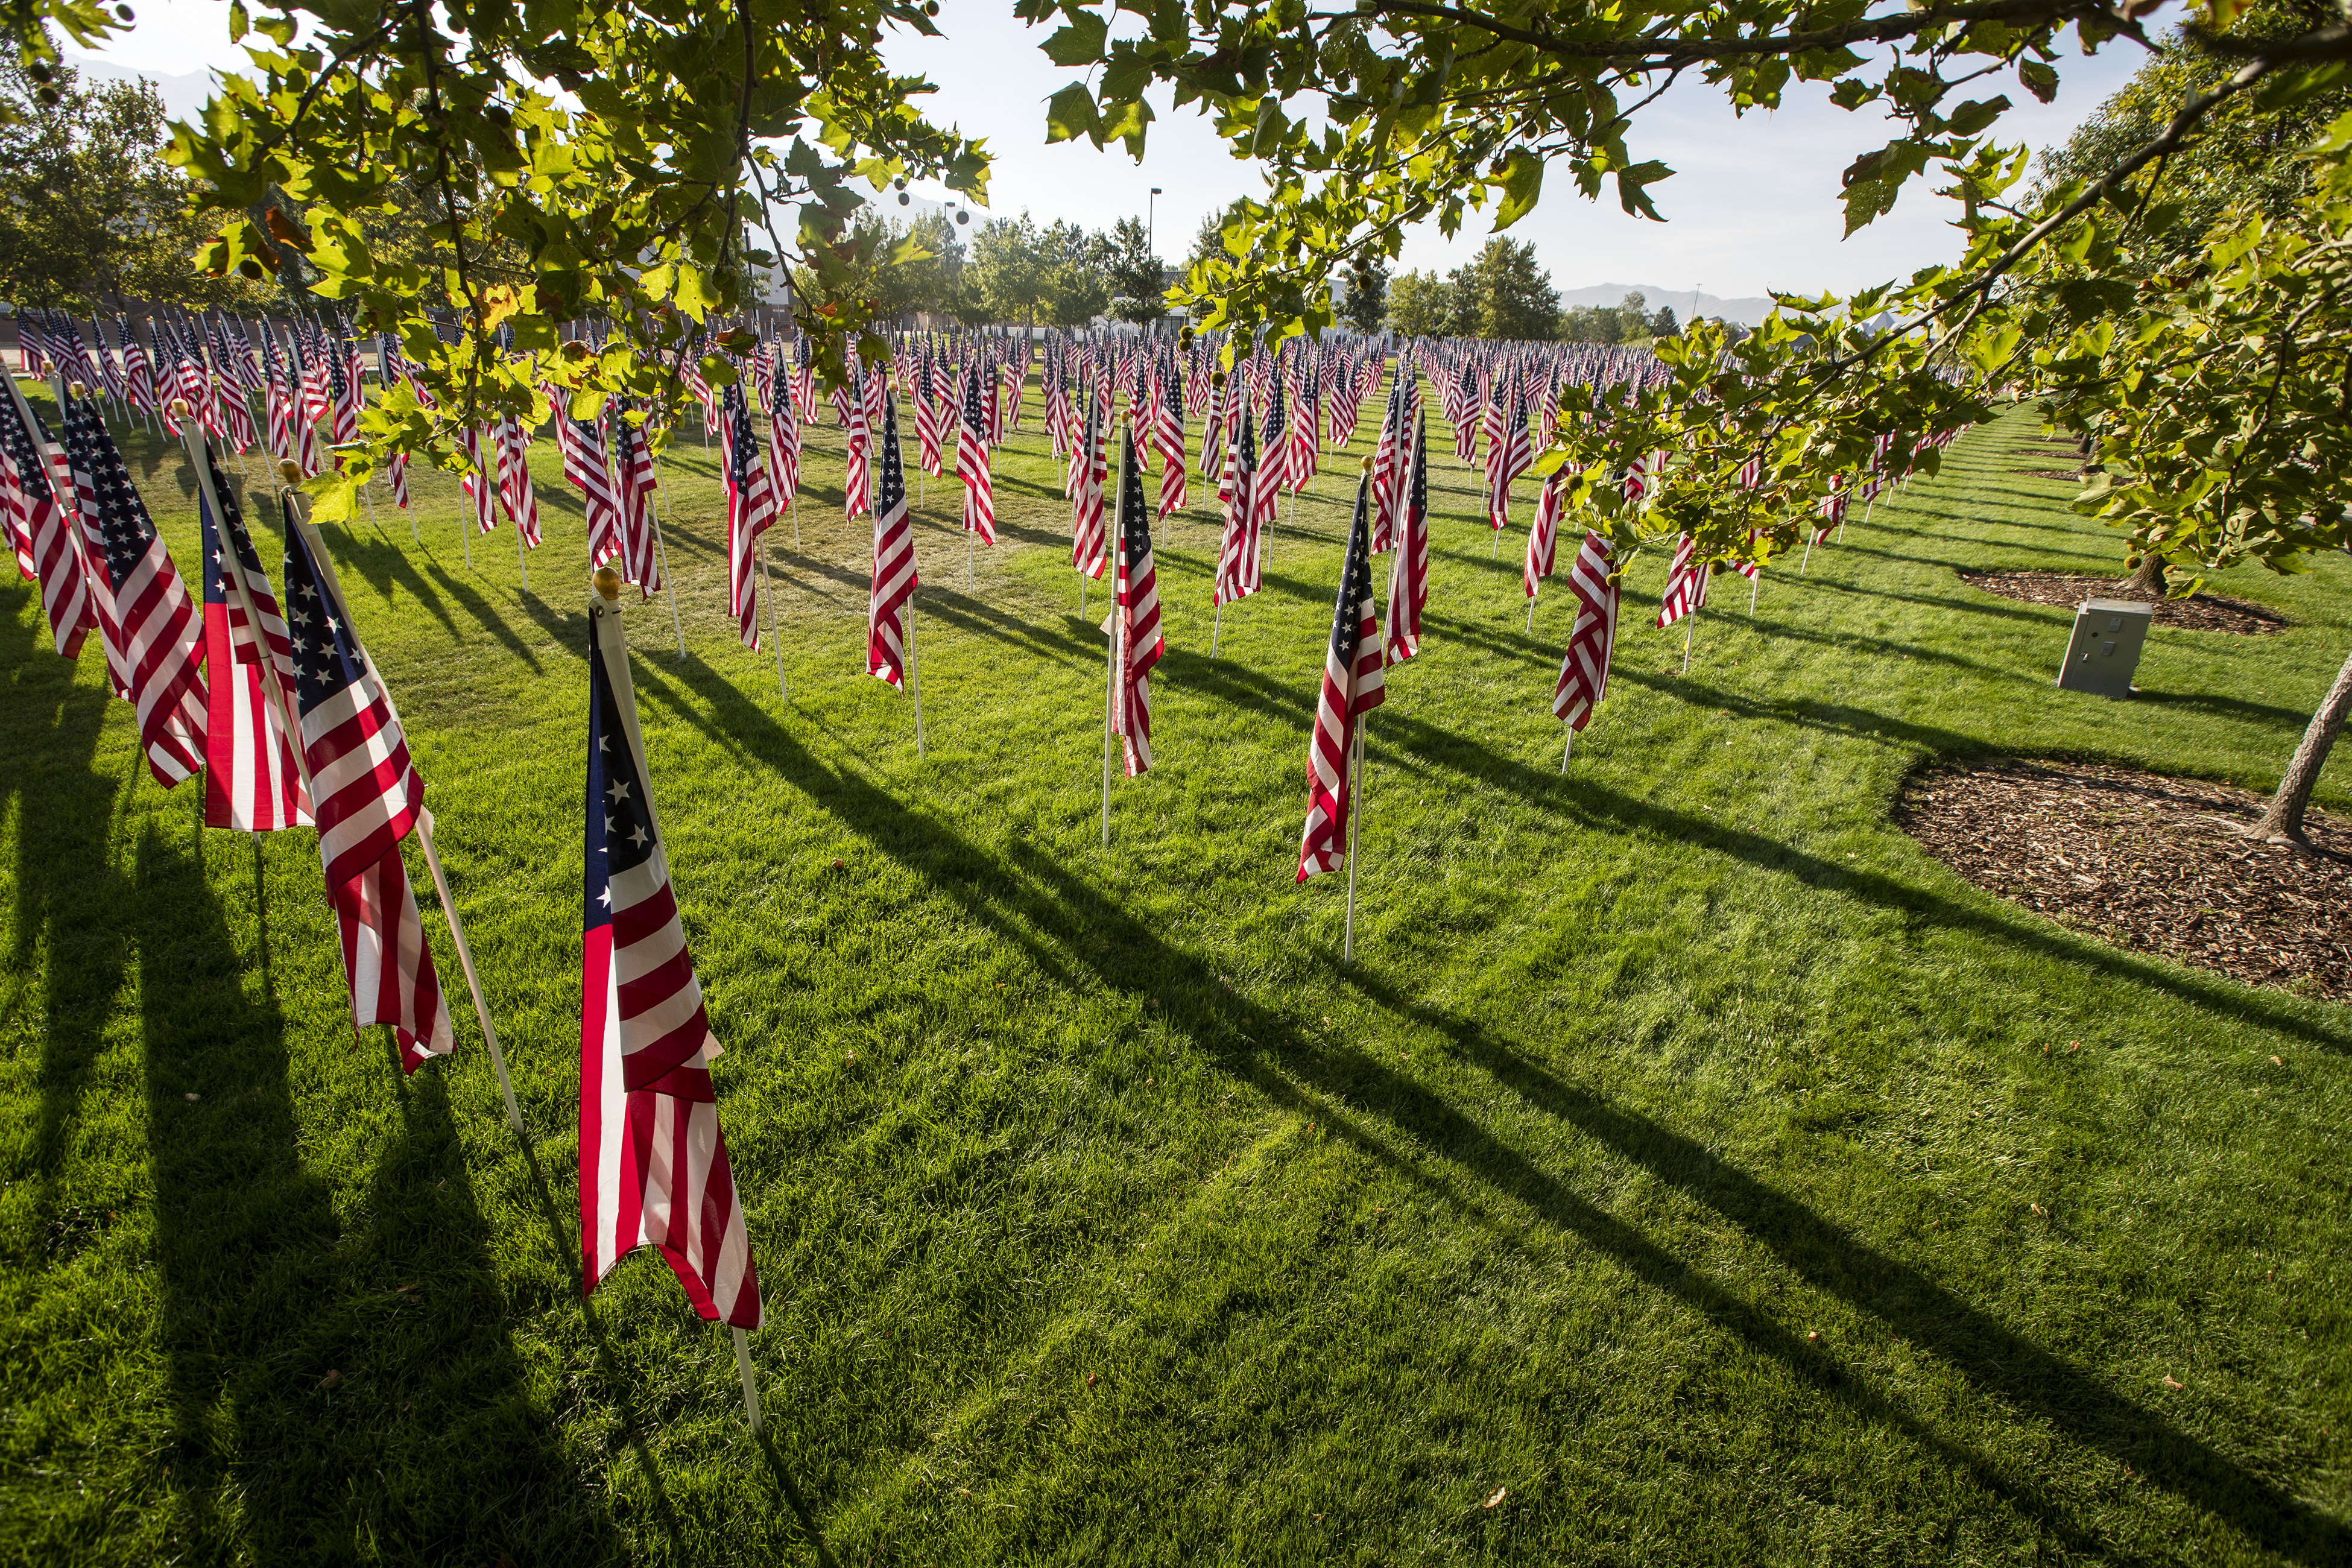 More than 3,000 flags on display on Sept. 10, 2018, near the Sandy City Hall, honoring the victims of the 9/11 terrorist attacks as the Utah Healing Field continues a local tradition that began in 2002.